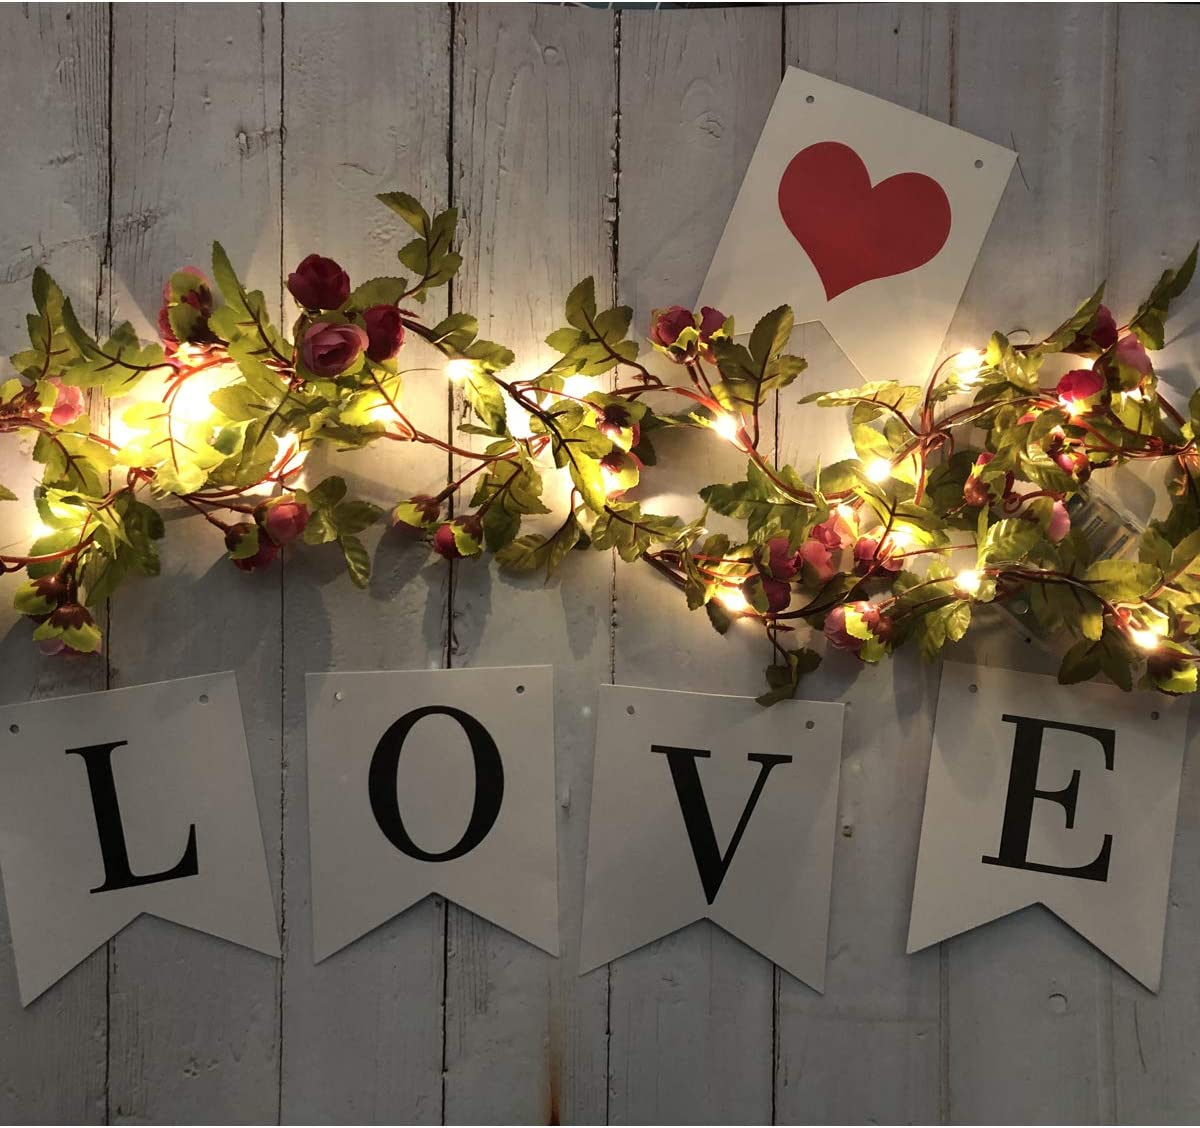 Fielegen 20LED Artificial Rose Flower Garland with Lights, Battery Operated 7.2ft Rose Vine Fairy String Lights with 42pcs Flowers for Valentine's Day, Wedding Bedroom Party Wreath Decor Floral Design